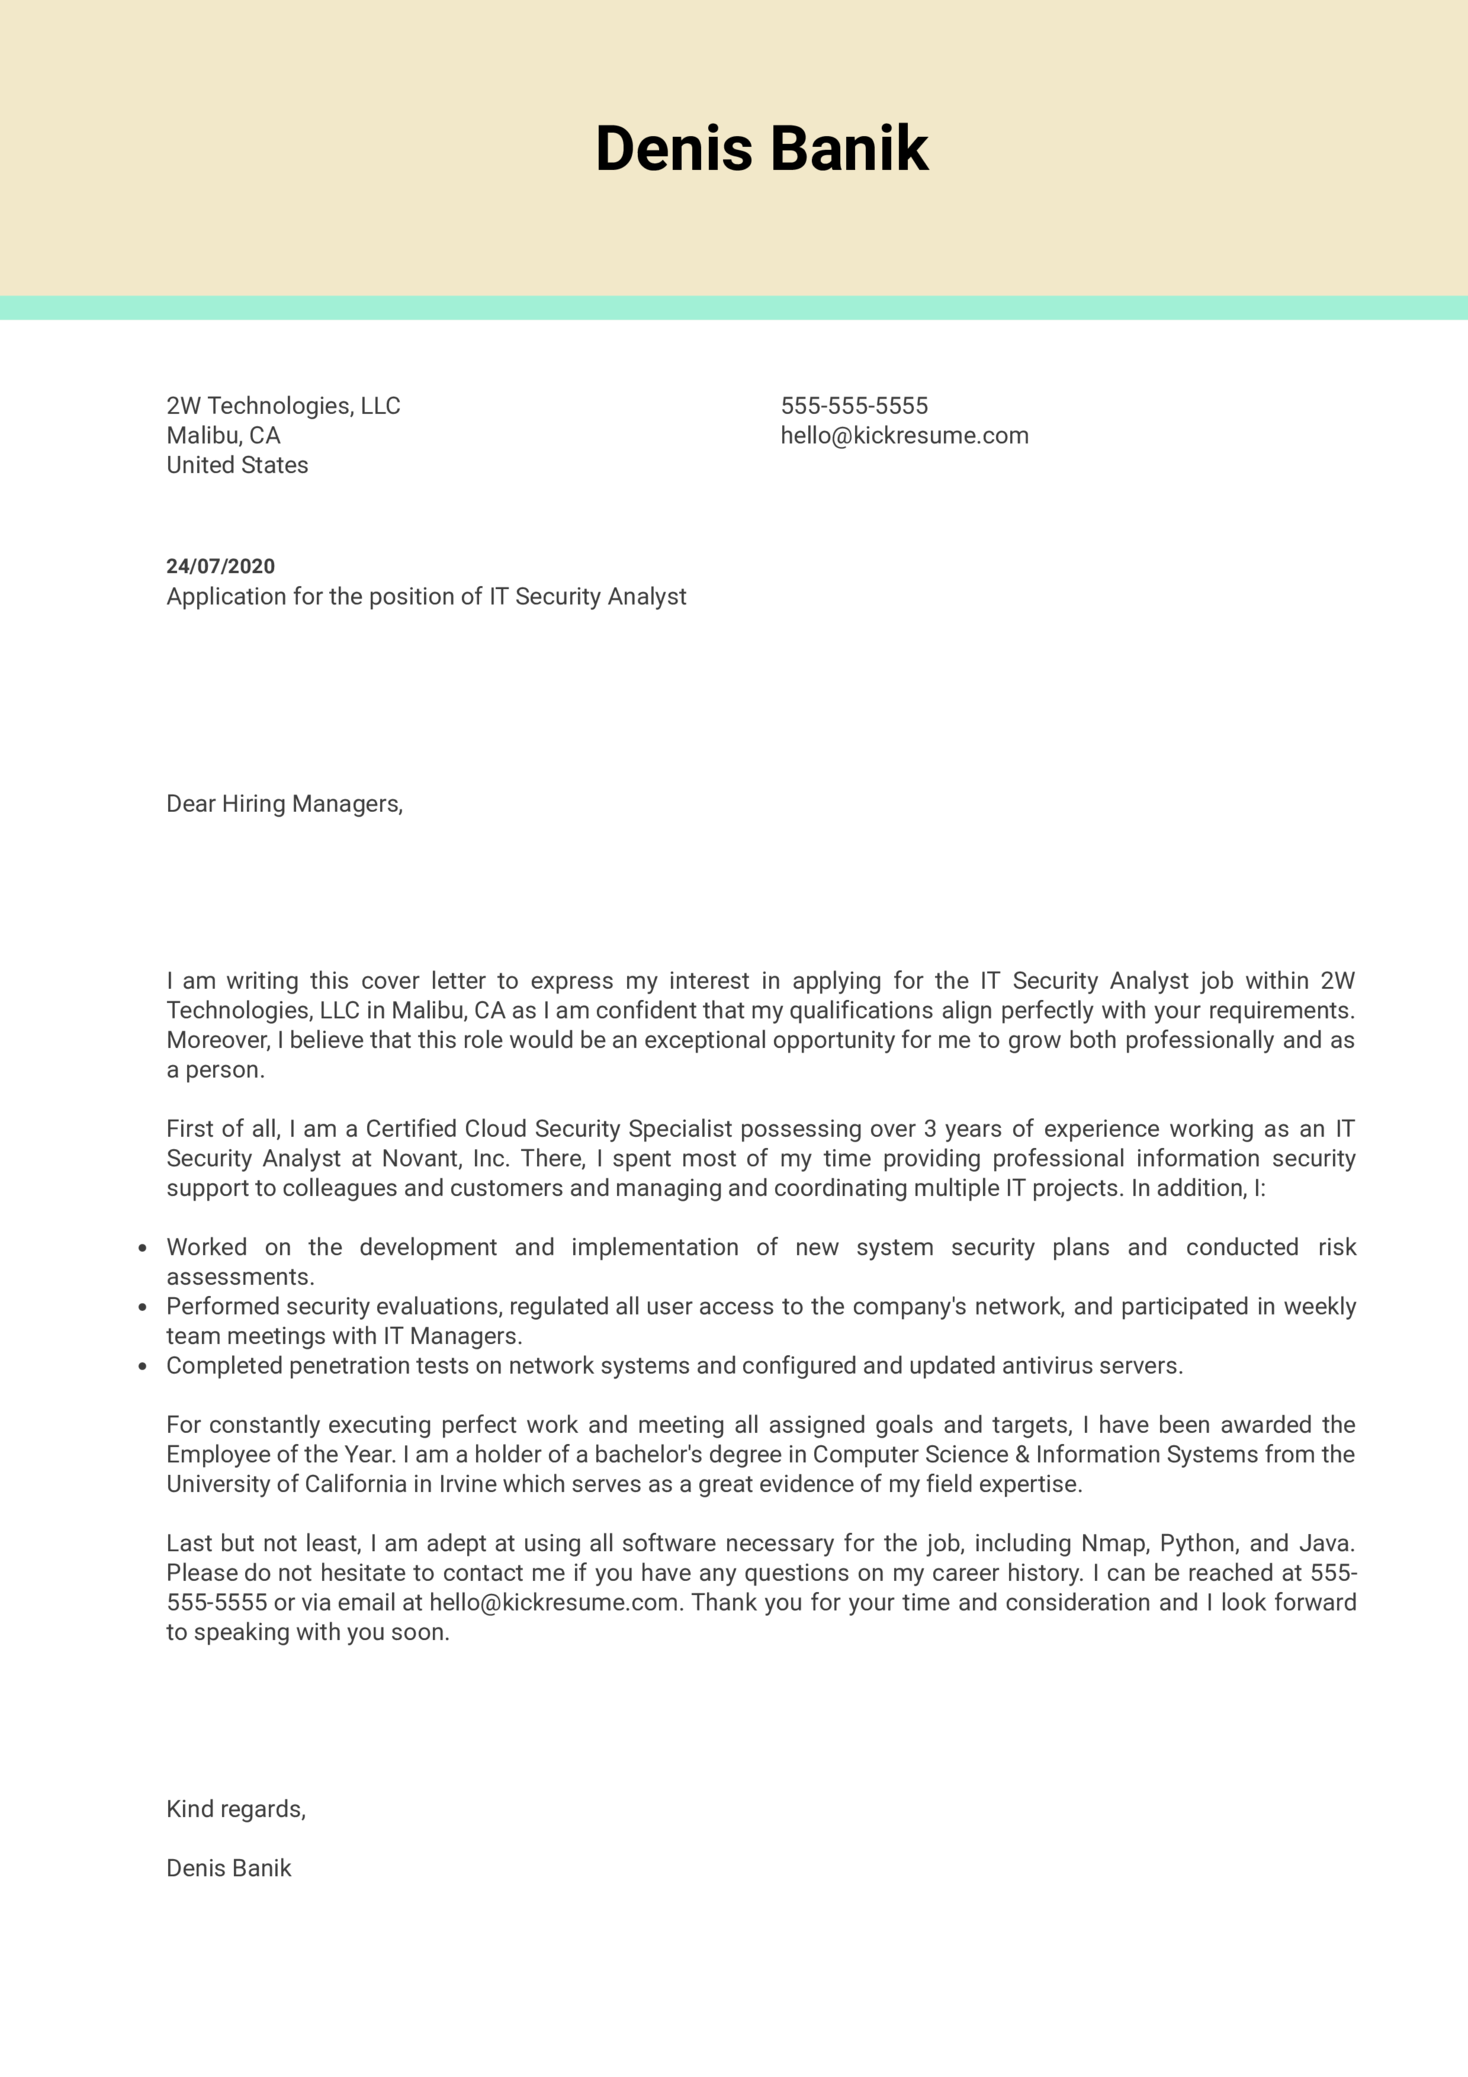 IT Security Analyst Cover Letter Example